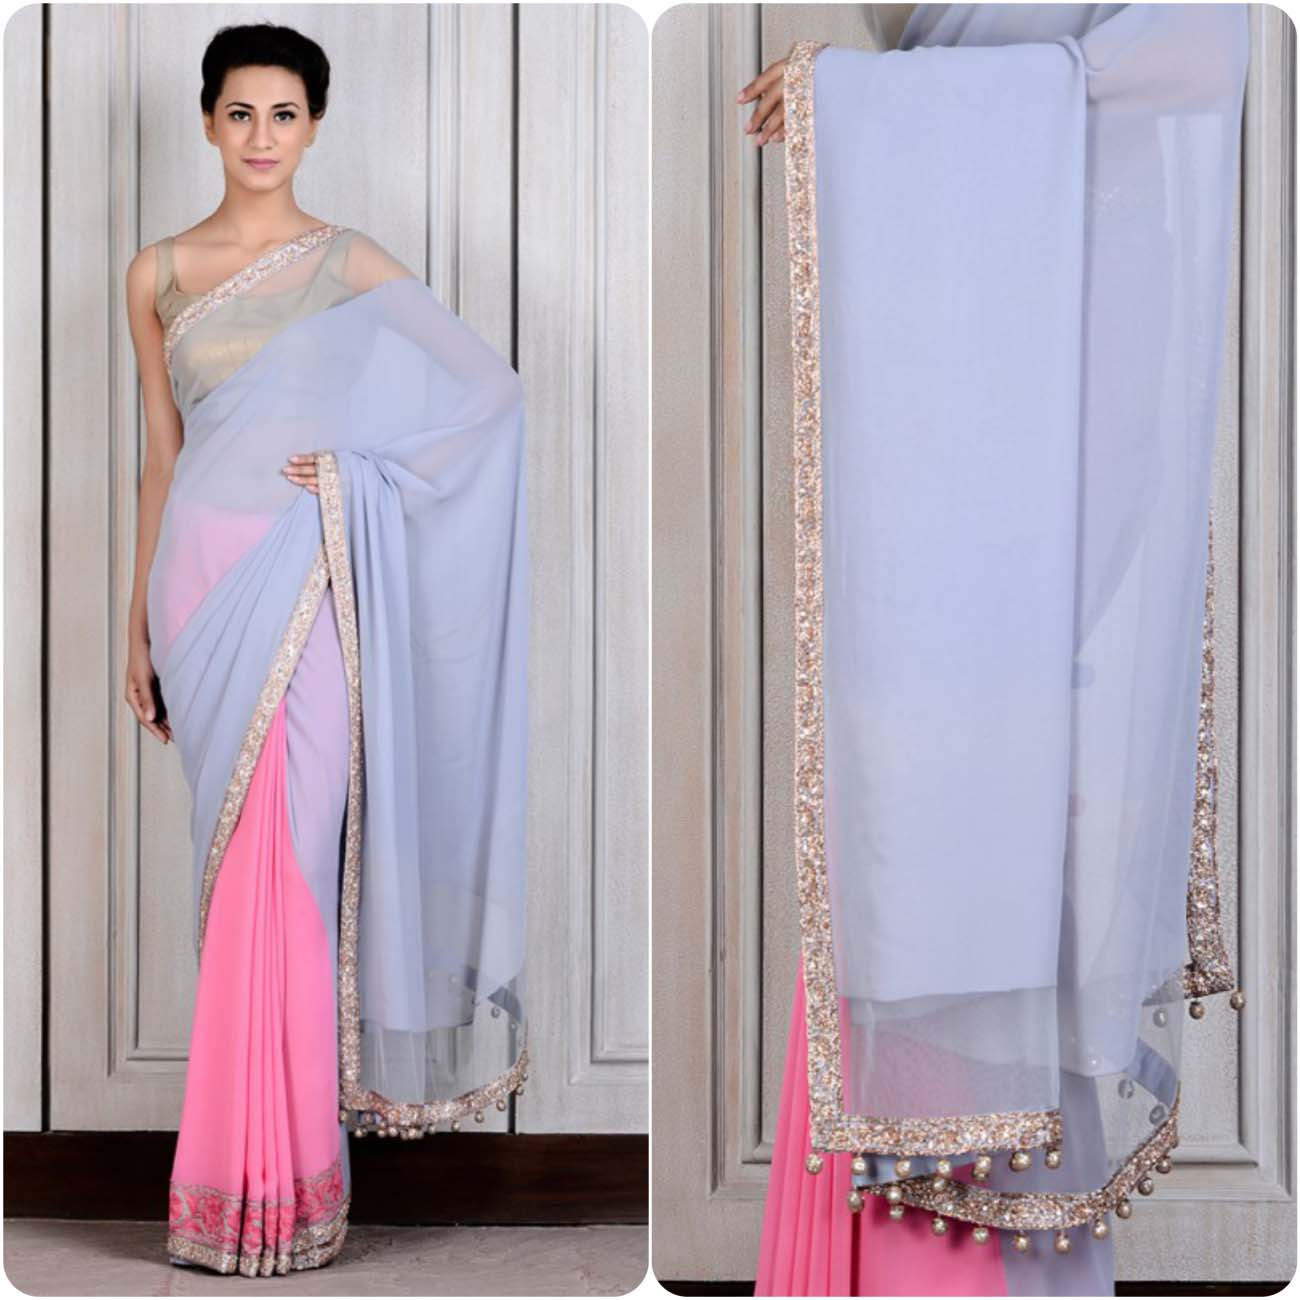 Manish Malhotra Designers Saree Collection 2016-2017...styloplanet (19)